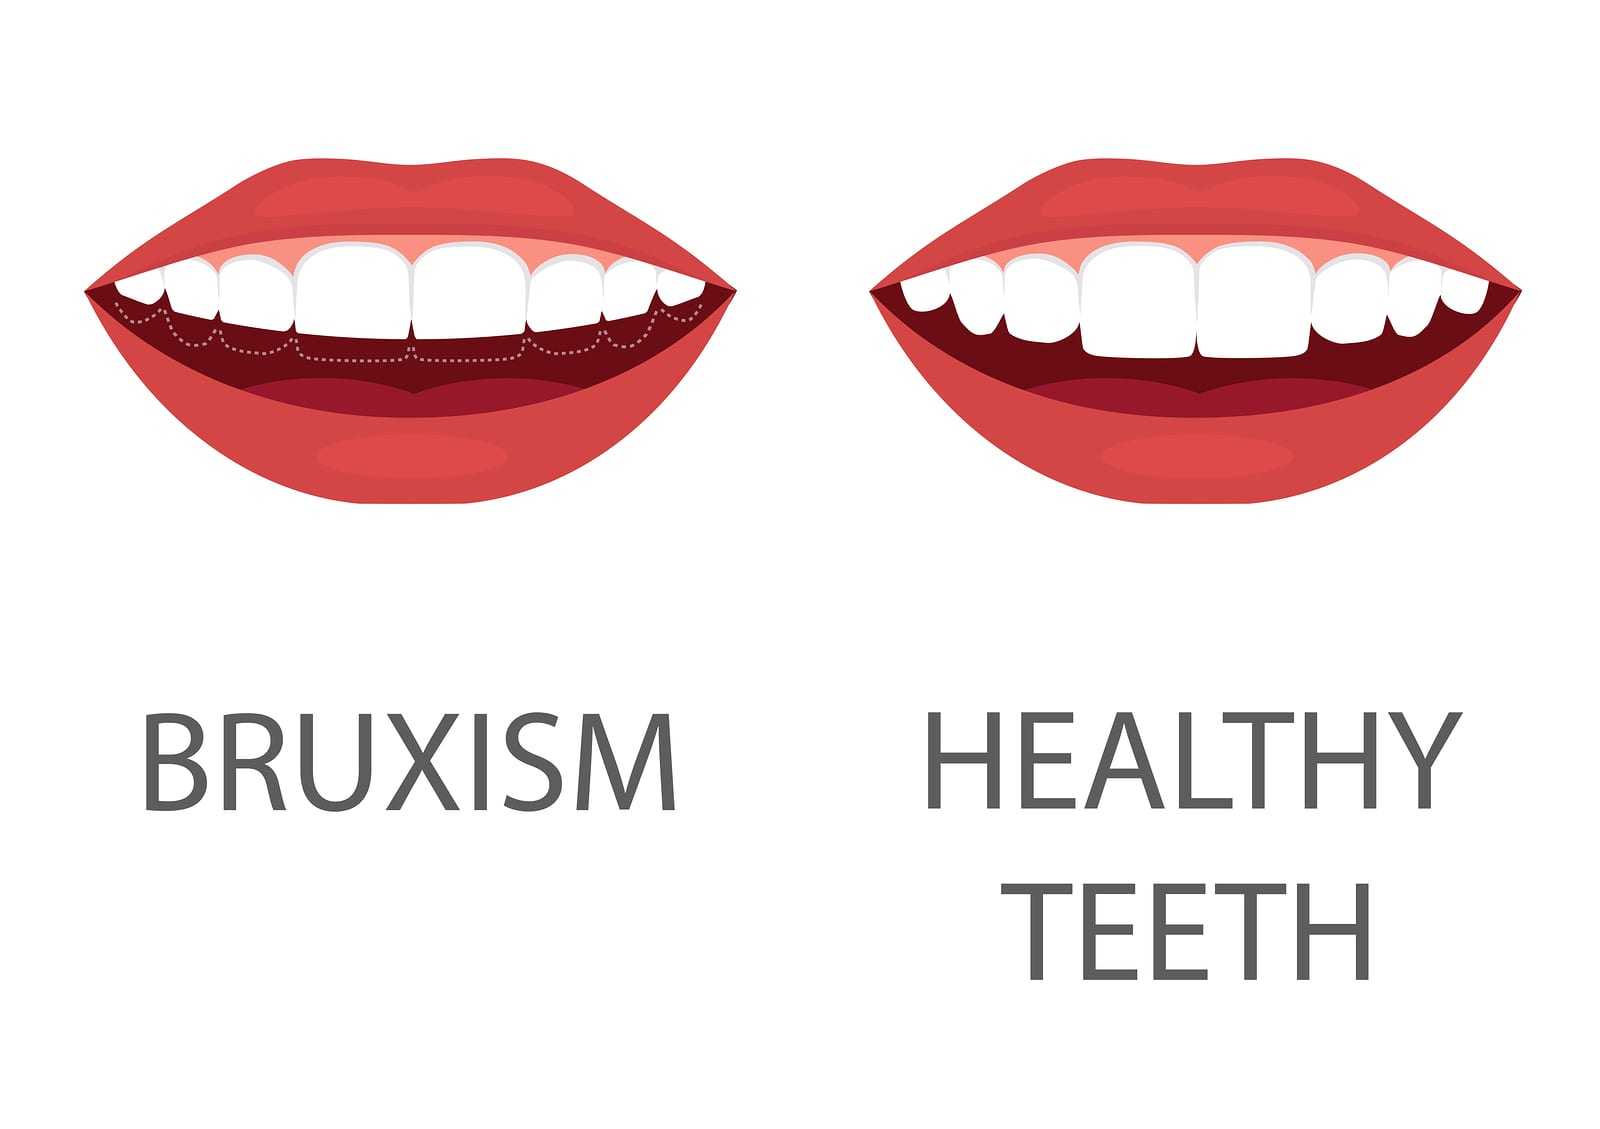 illustration of the effects of bruxism